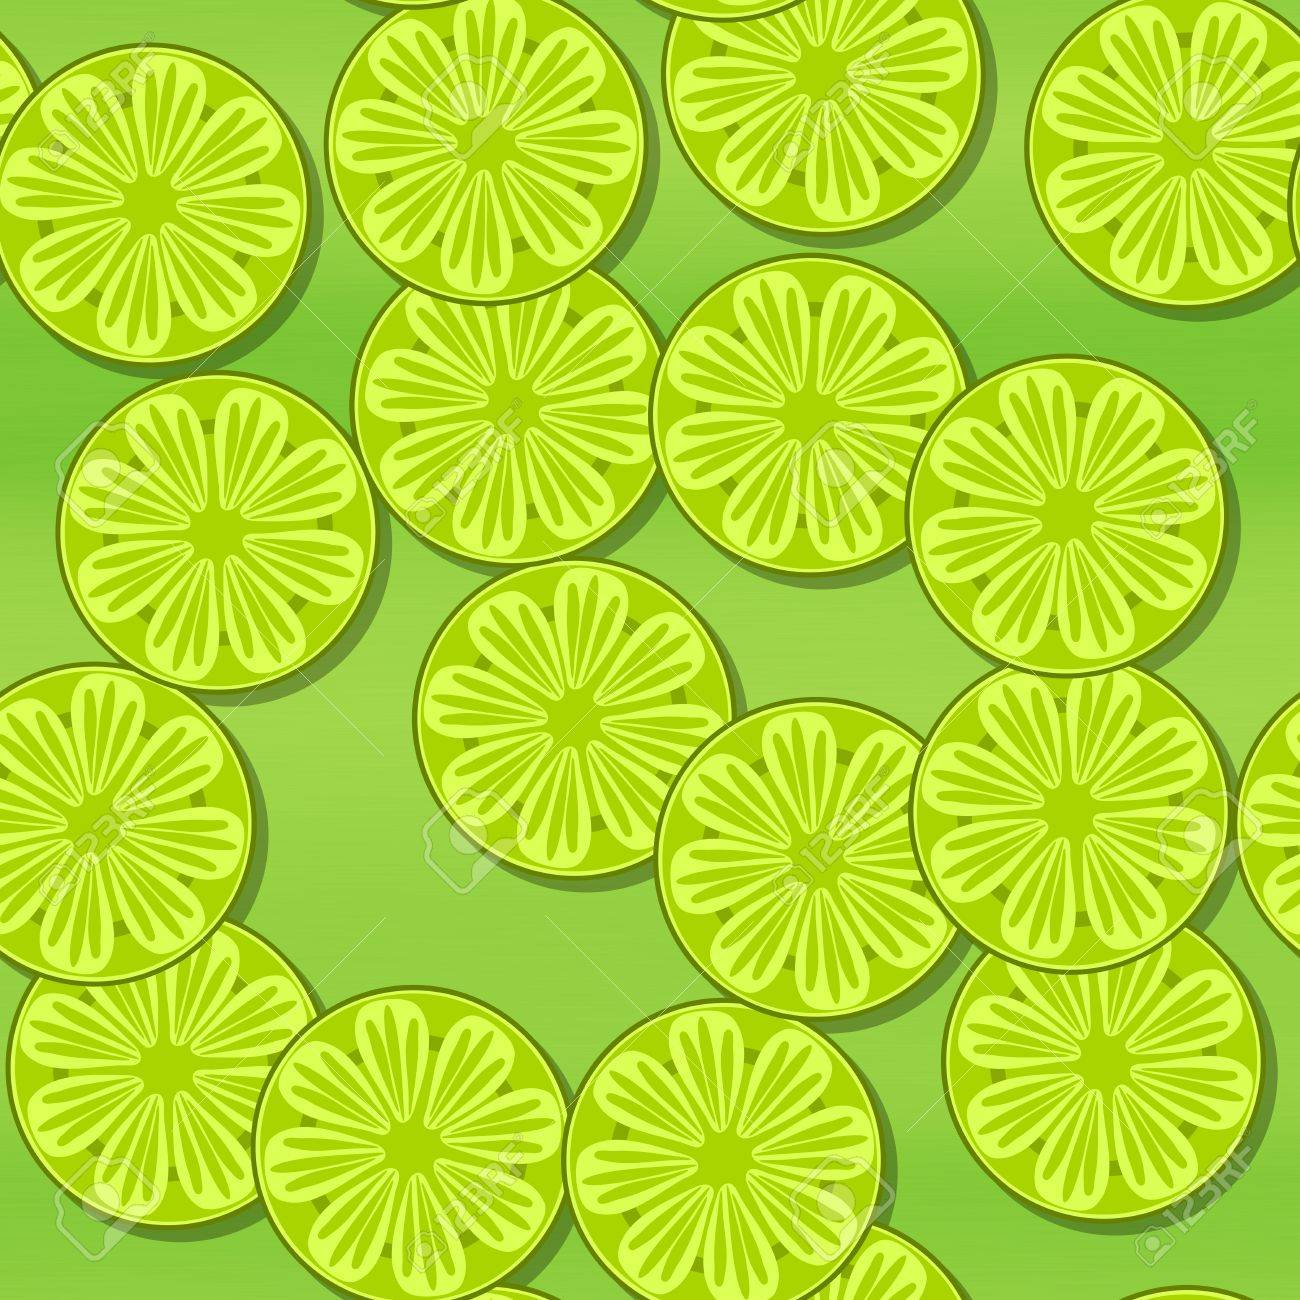 Yellow Green Wallpaper With Slices Of Citrus Lime Or Lemon Stock